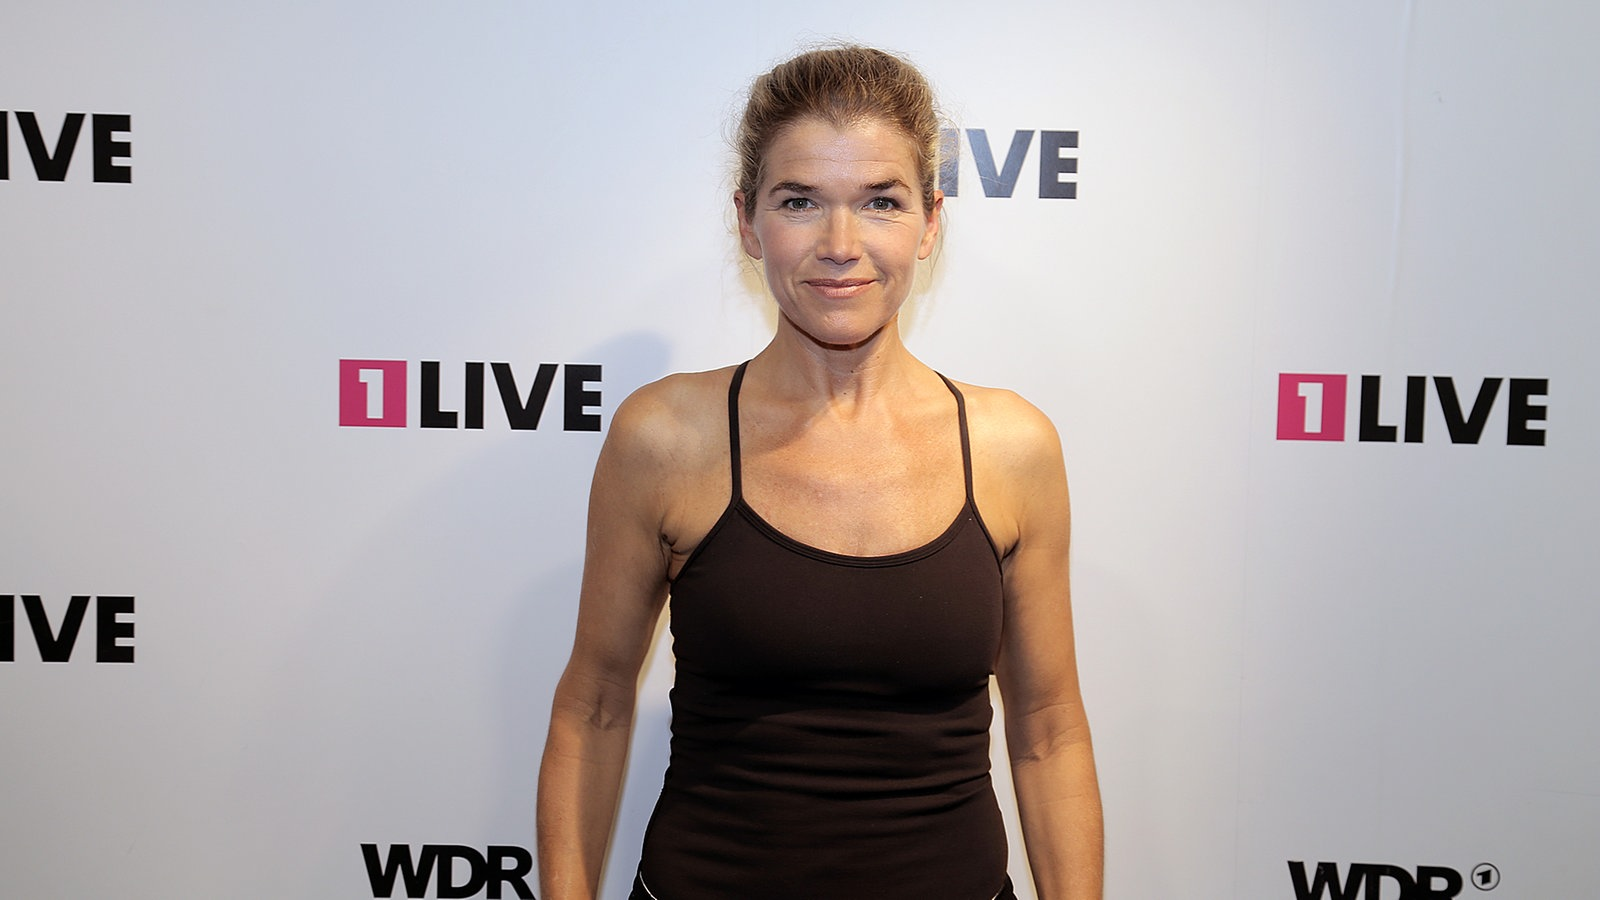 Anke Engelke Stock Photos and Pictures | Getty Images